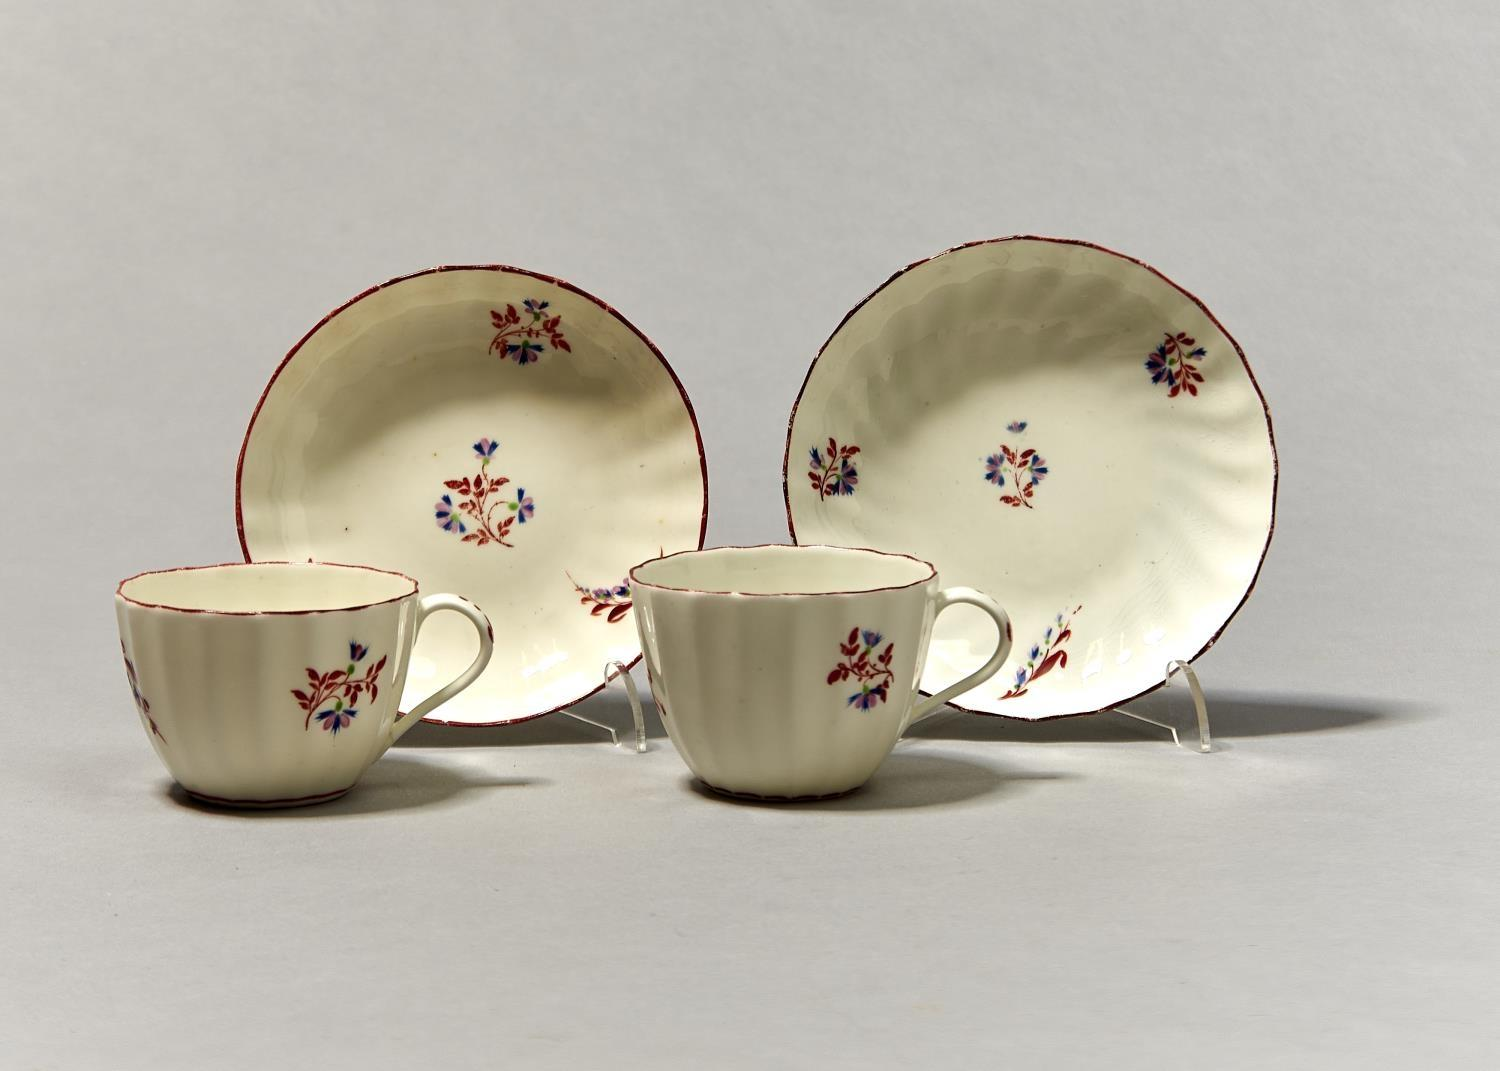 TWO PINXTON FLUTED TEACUPS AND SAUCERS, PATTERN 1 (RED SPRIG), C1800, SAUCER 14CM DIAM Localised